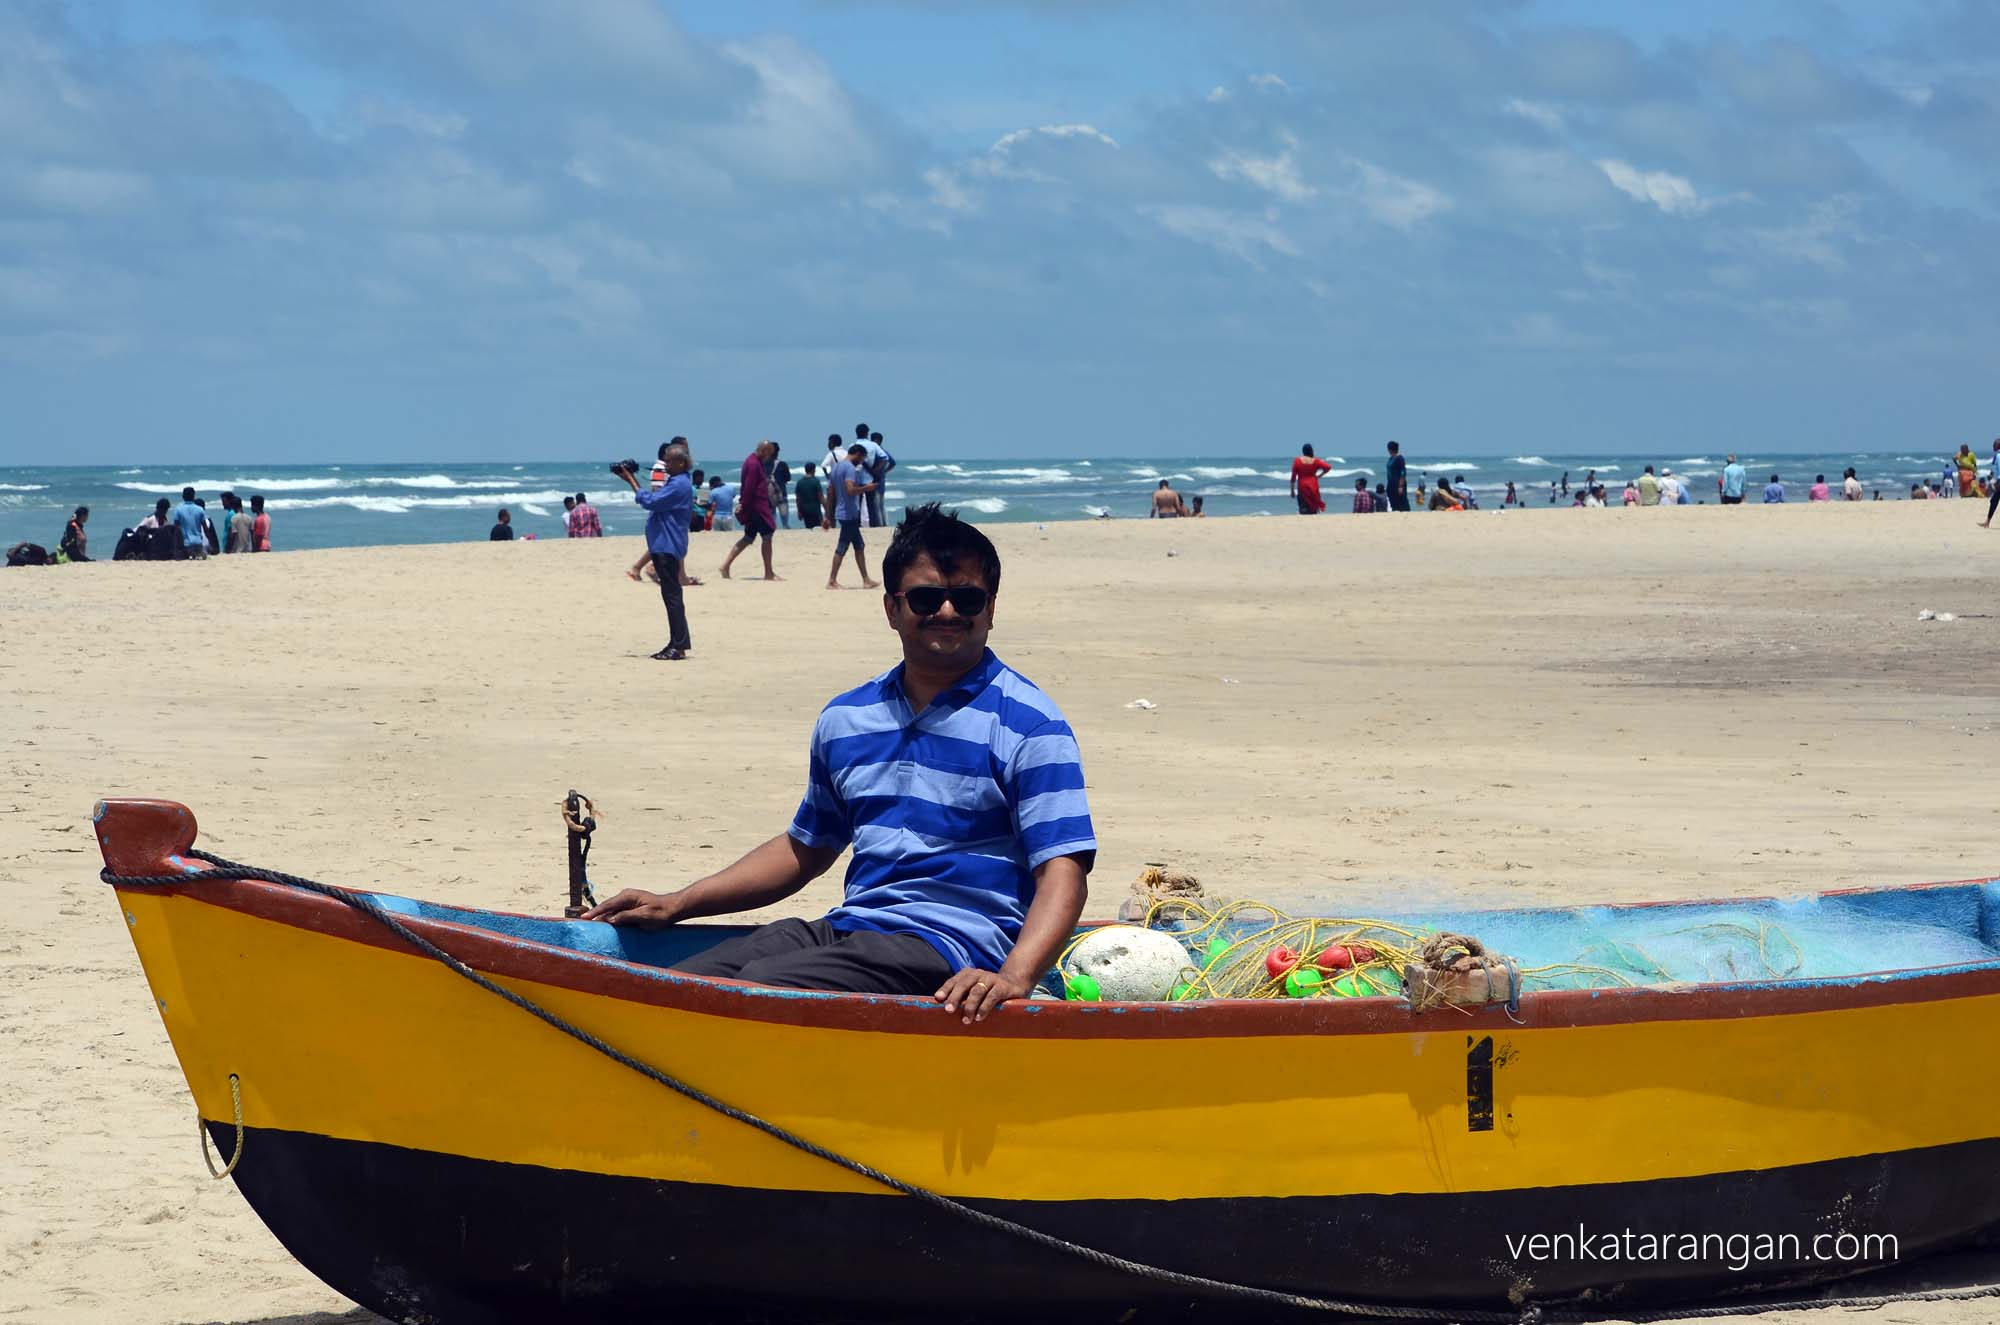 Venkatarangan on a boat to nowhere